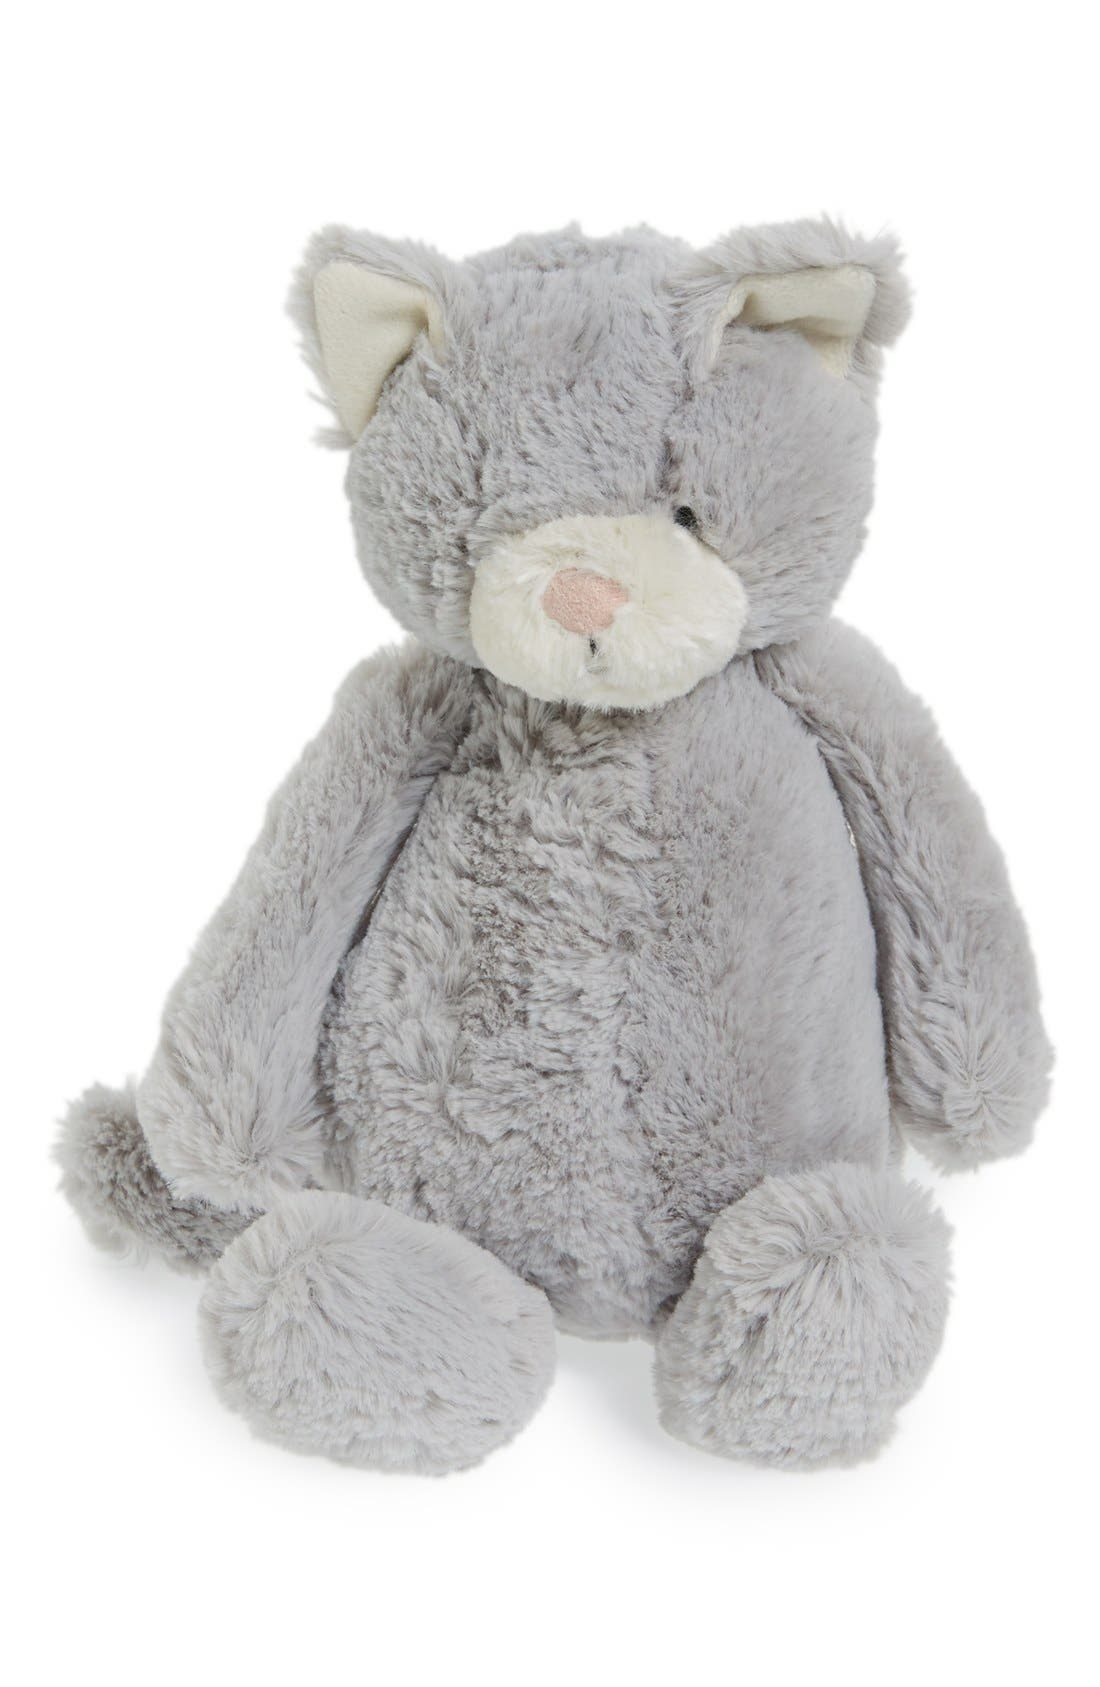 'Medium Bashful Kitty' Stuffed Animal,                         Main,                         color, GREY/ WHITE